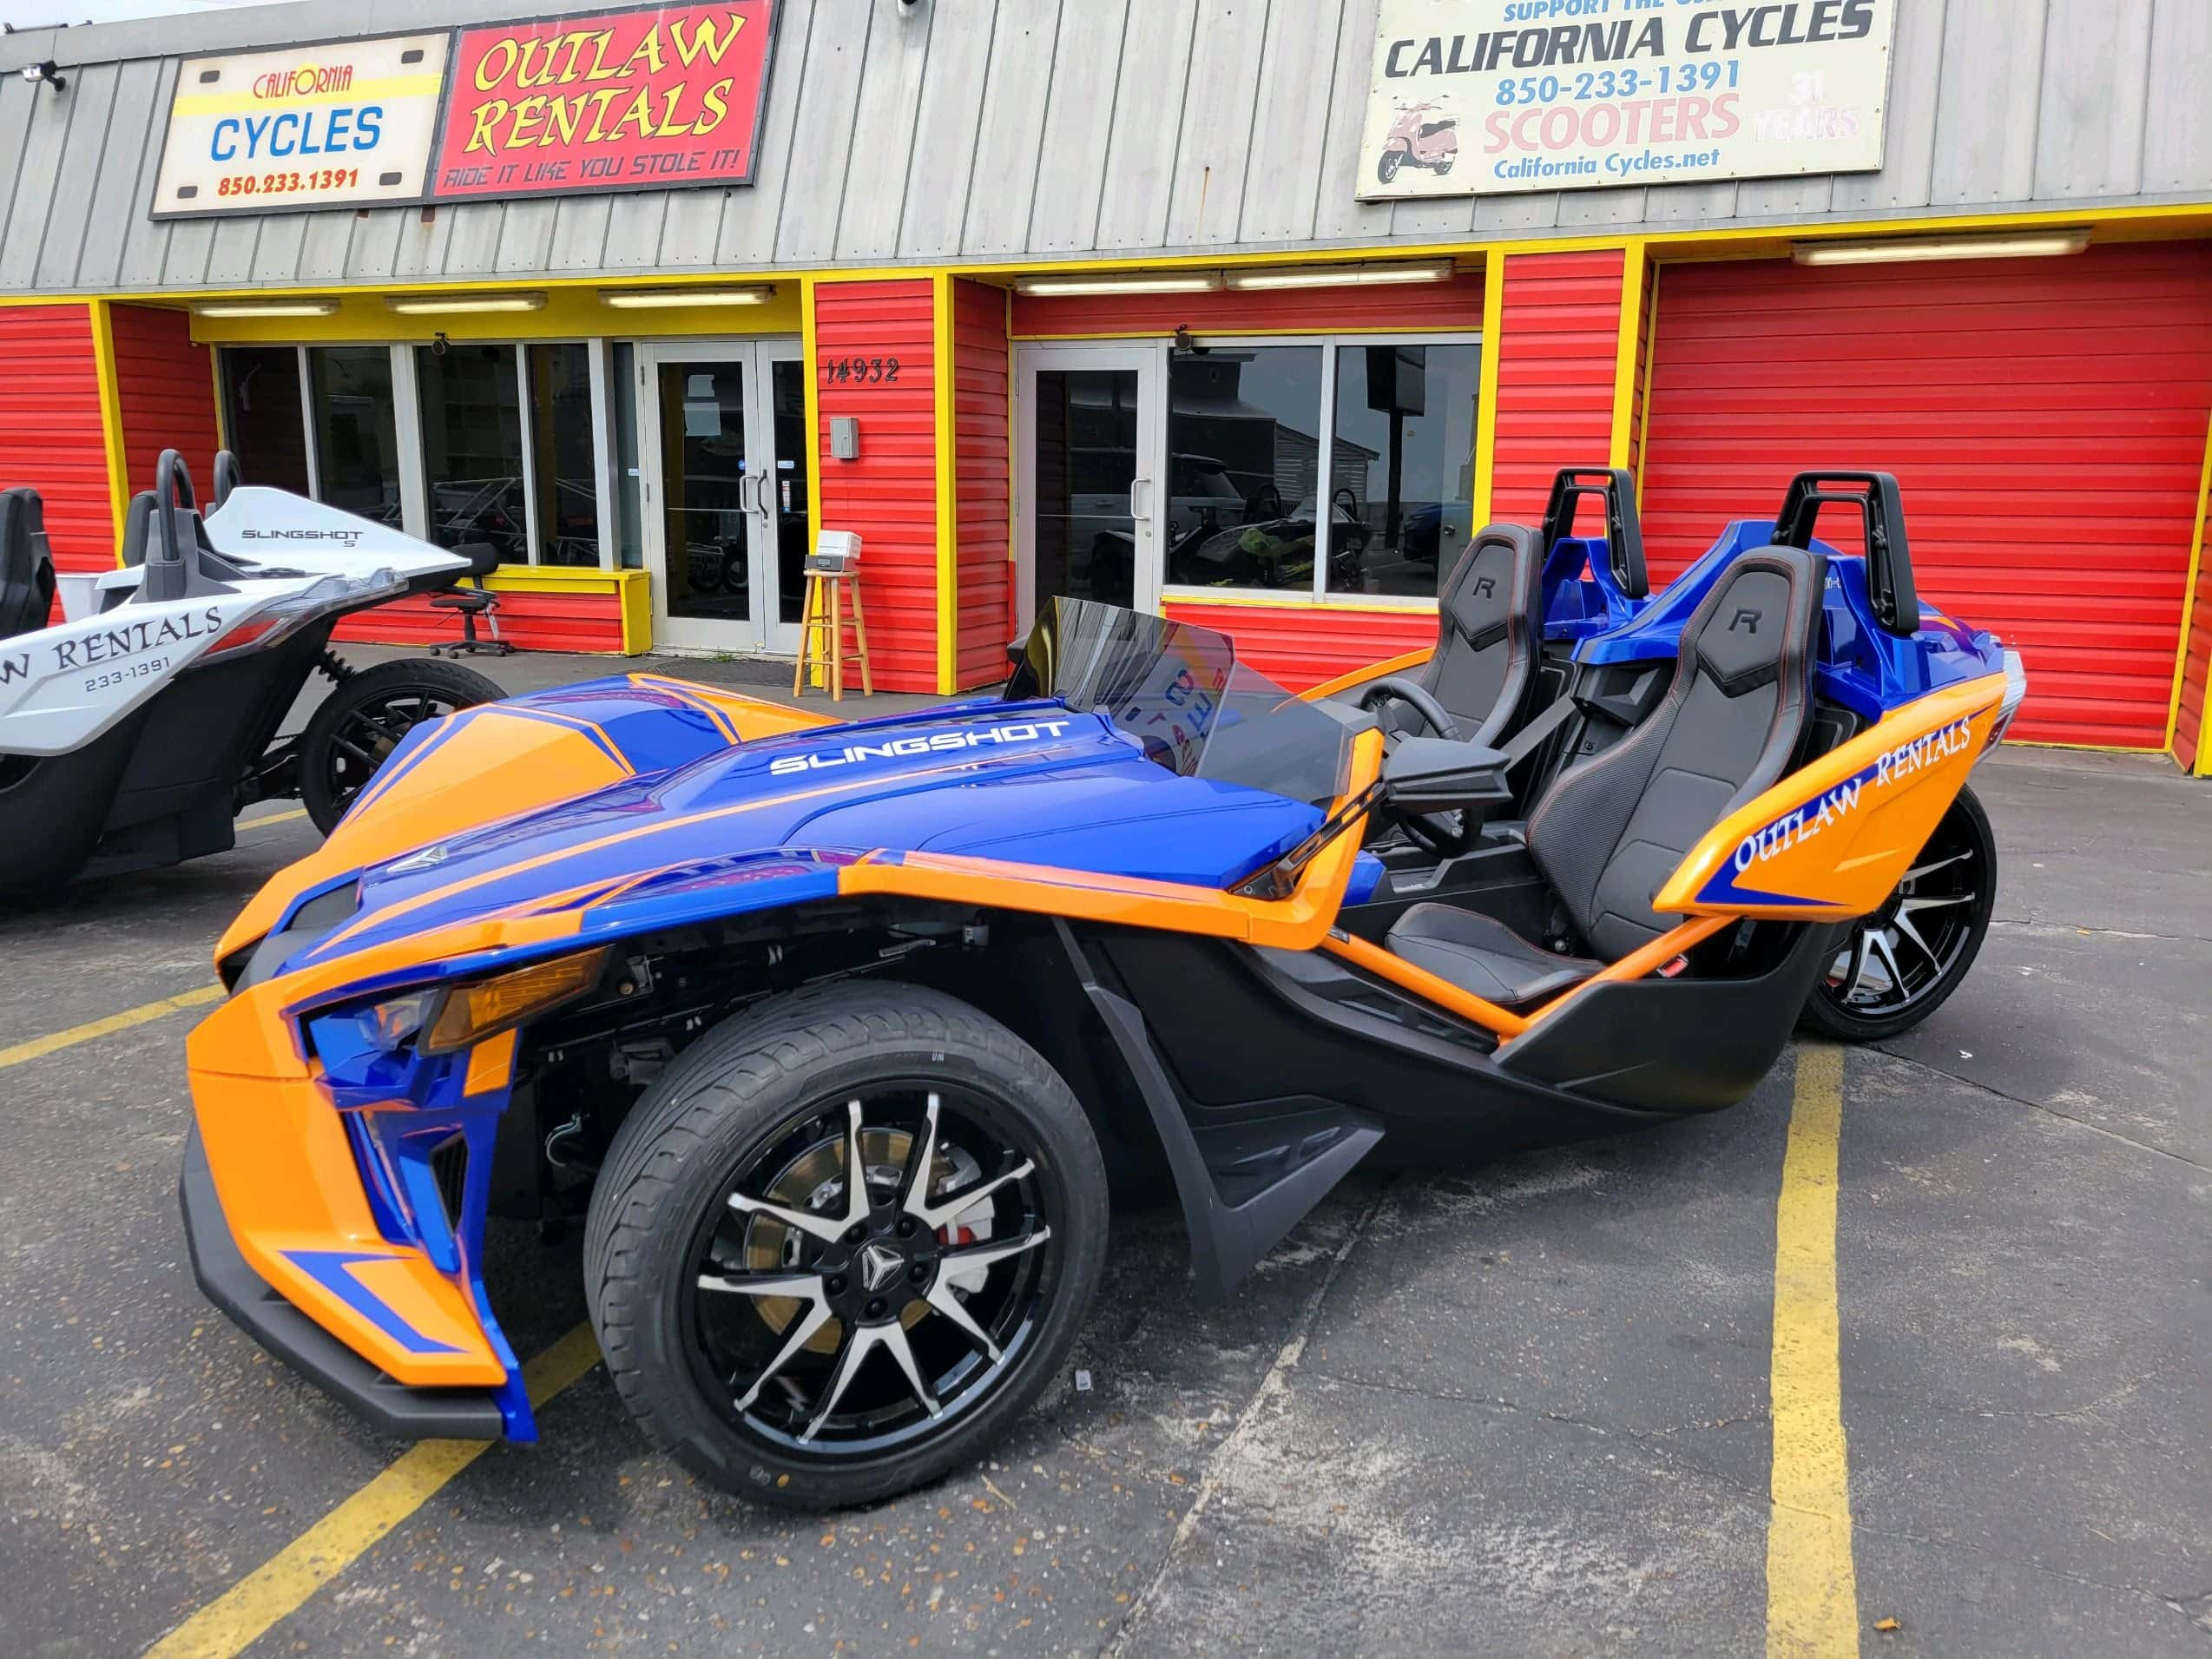 14932 Front Beach Road - California Cycles - Outlaw Rentals